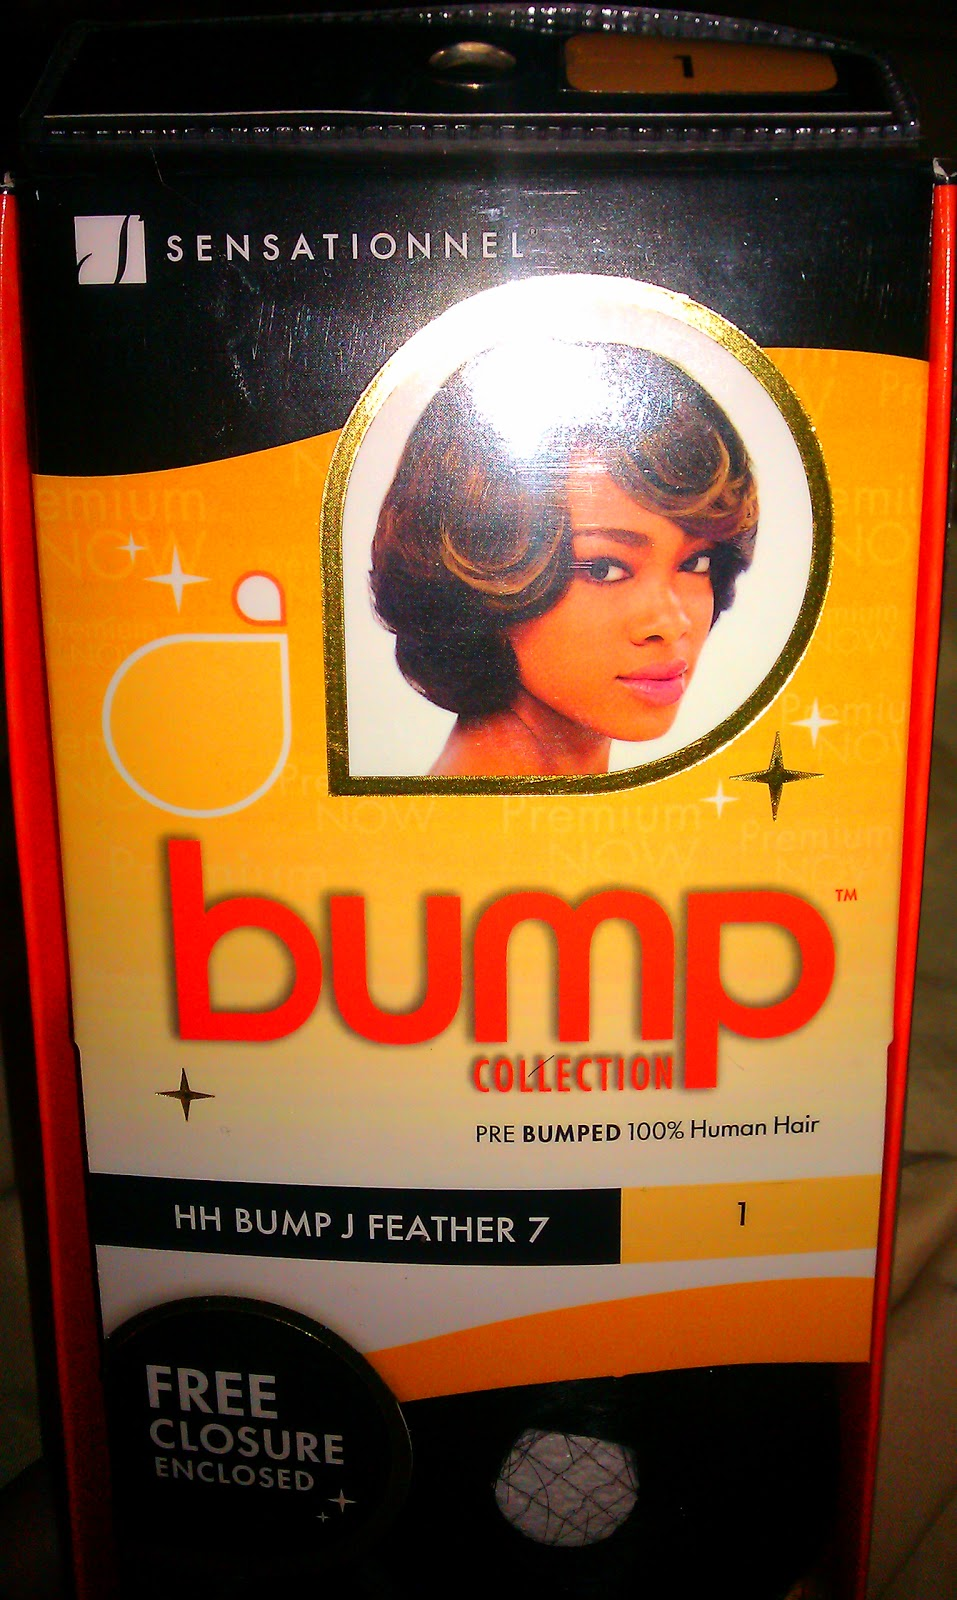 Painted Glam Quickie Protective Weave Styling With Sensationnel Bump